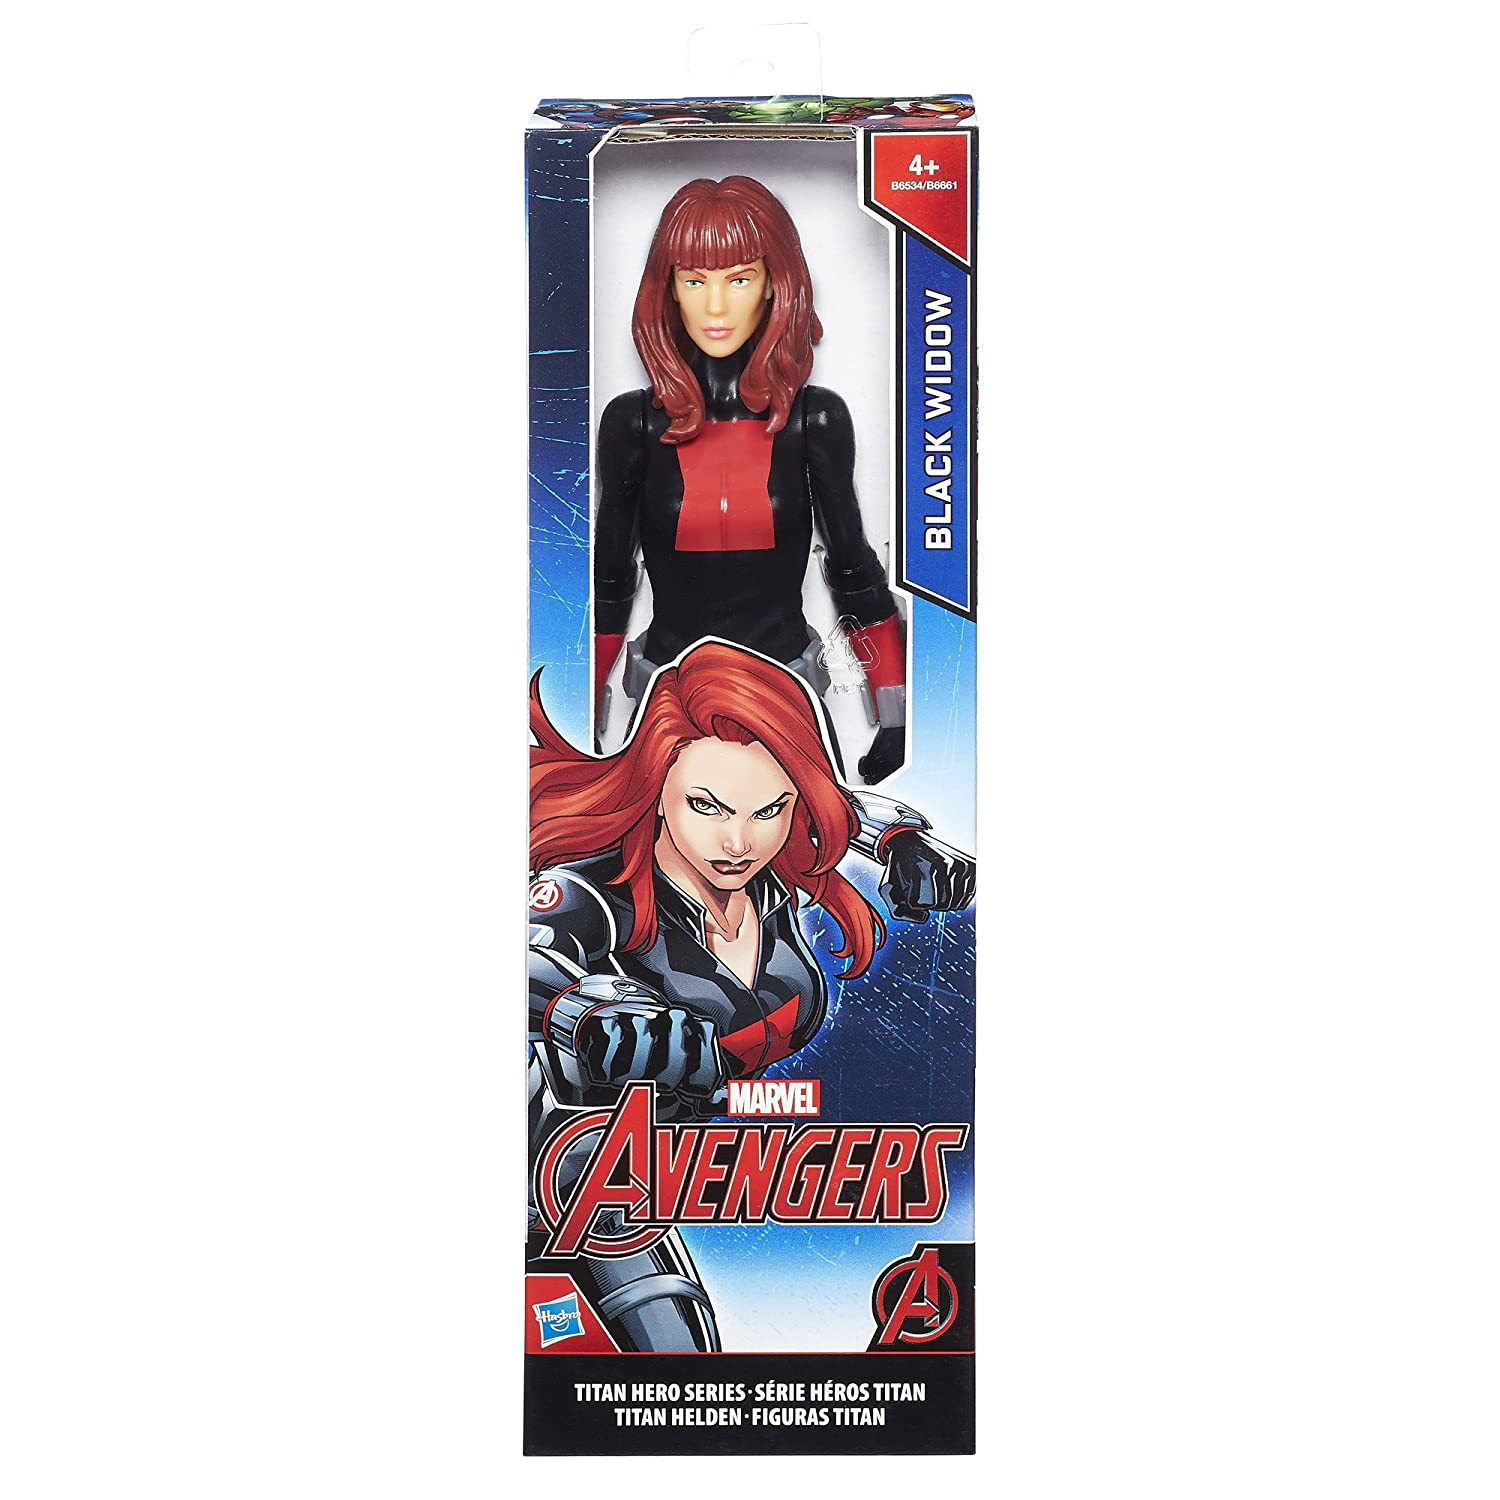 Avengers Marvel Titan Hero Series Black Widow Figure, 12-Inch